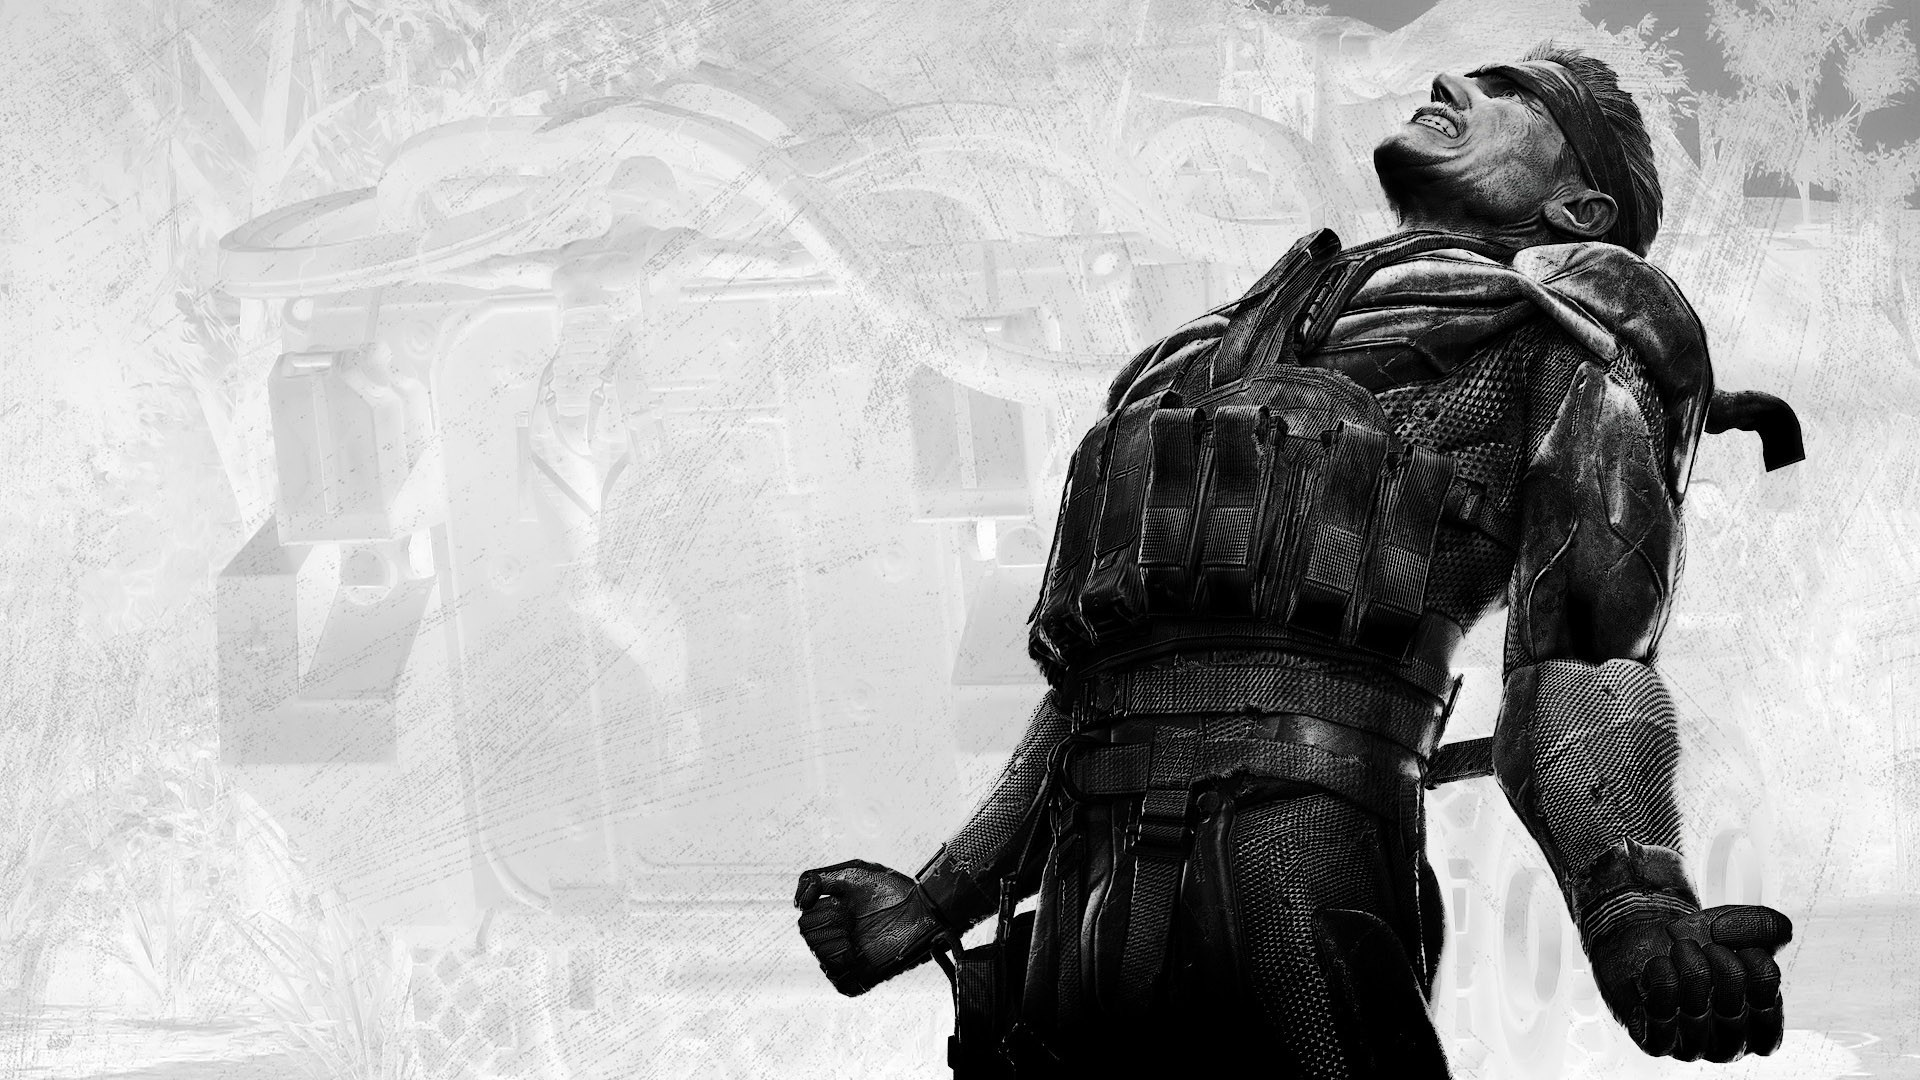 General 1920x1080 Metal Gear Solid  soldier video games PC gaming military monochrome Metal Gear Solid 4